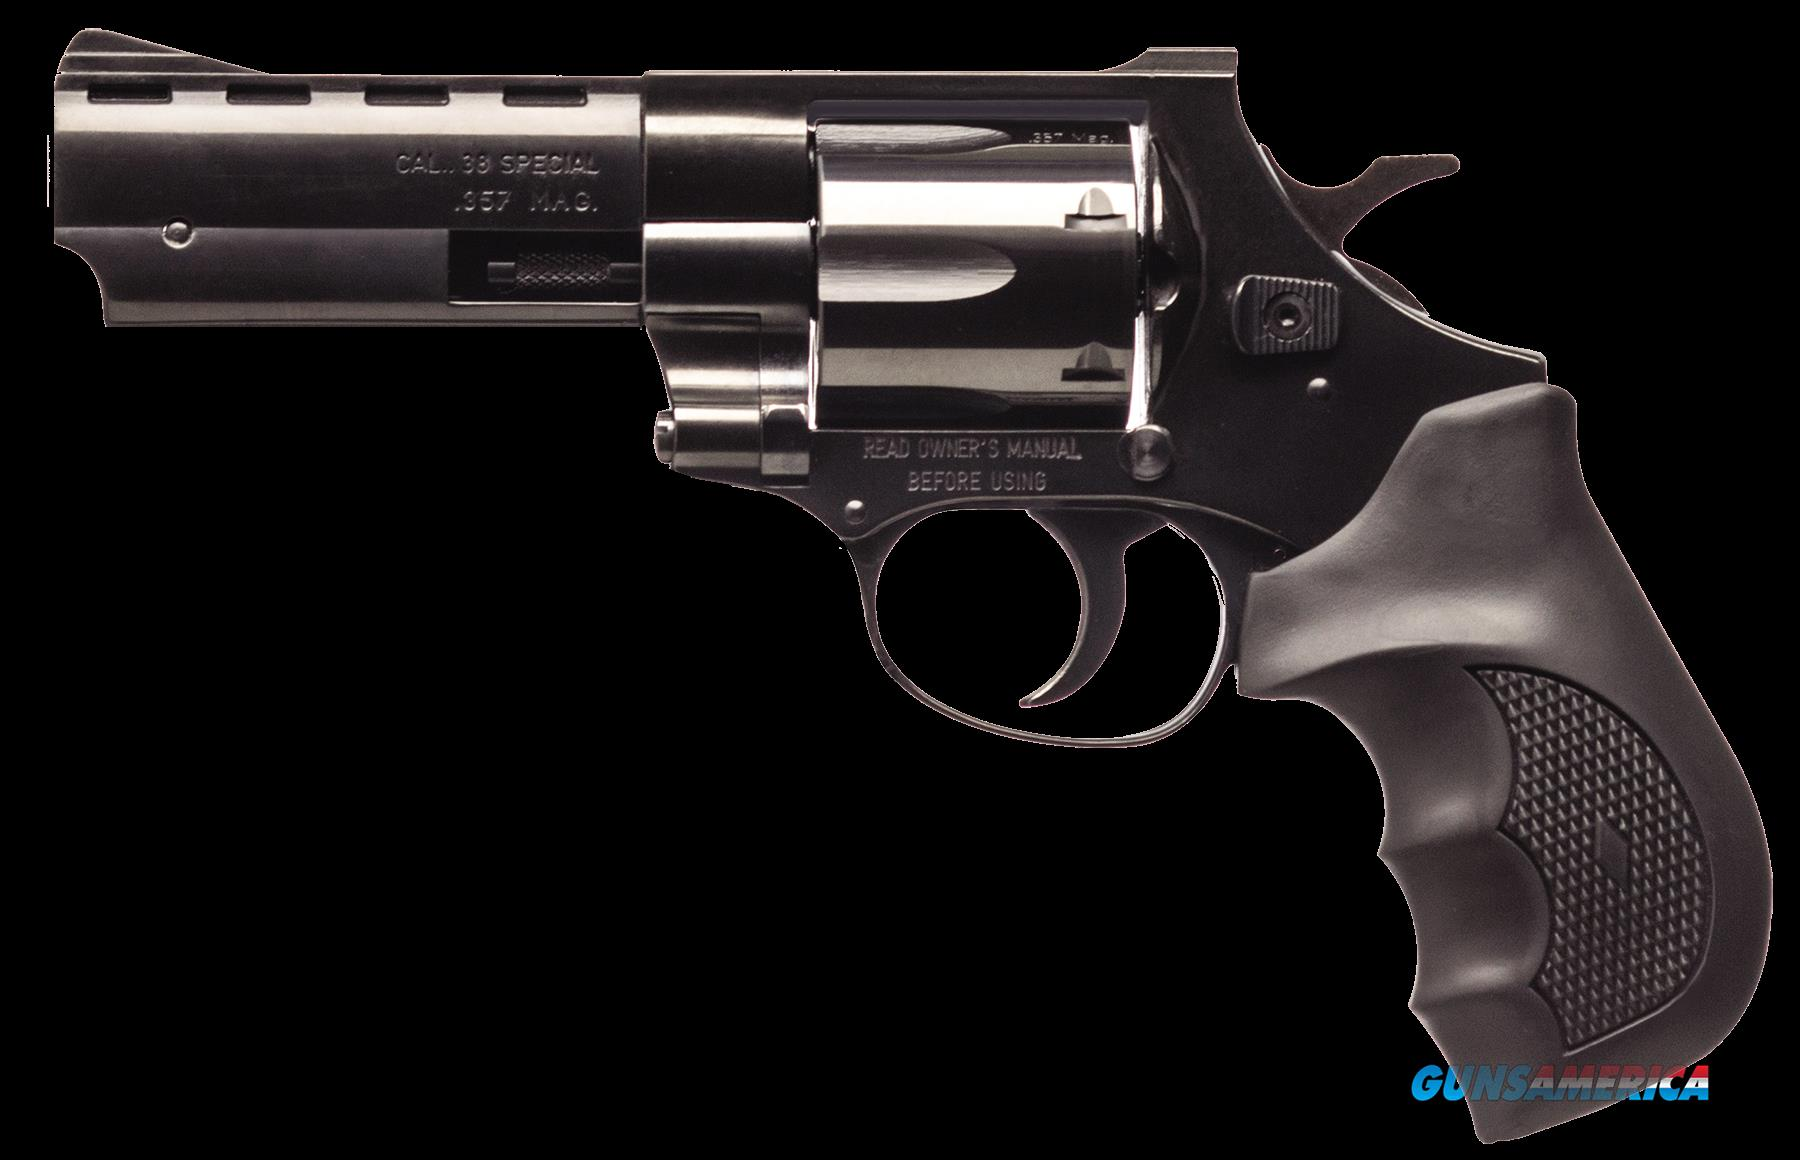 "EAA EARB3574 Windicator Steel Frame Single/Double 357 Magnum 4"" 6 FS Black Rubber Grip Blued  Guns > Pistols > EAA Pistols > Other"